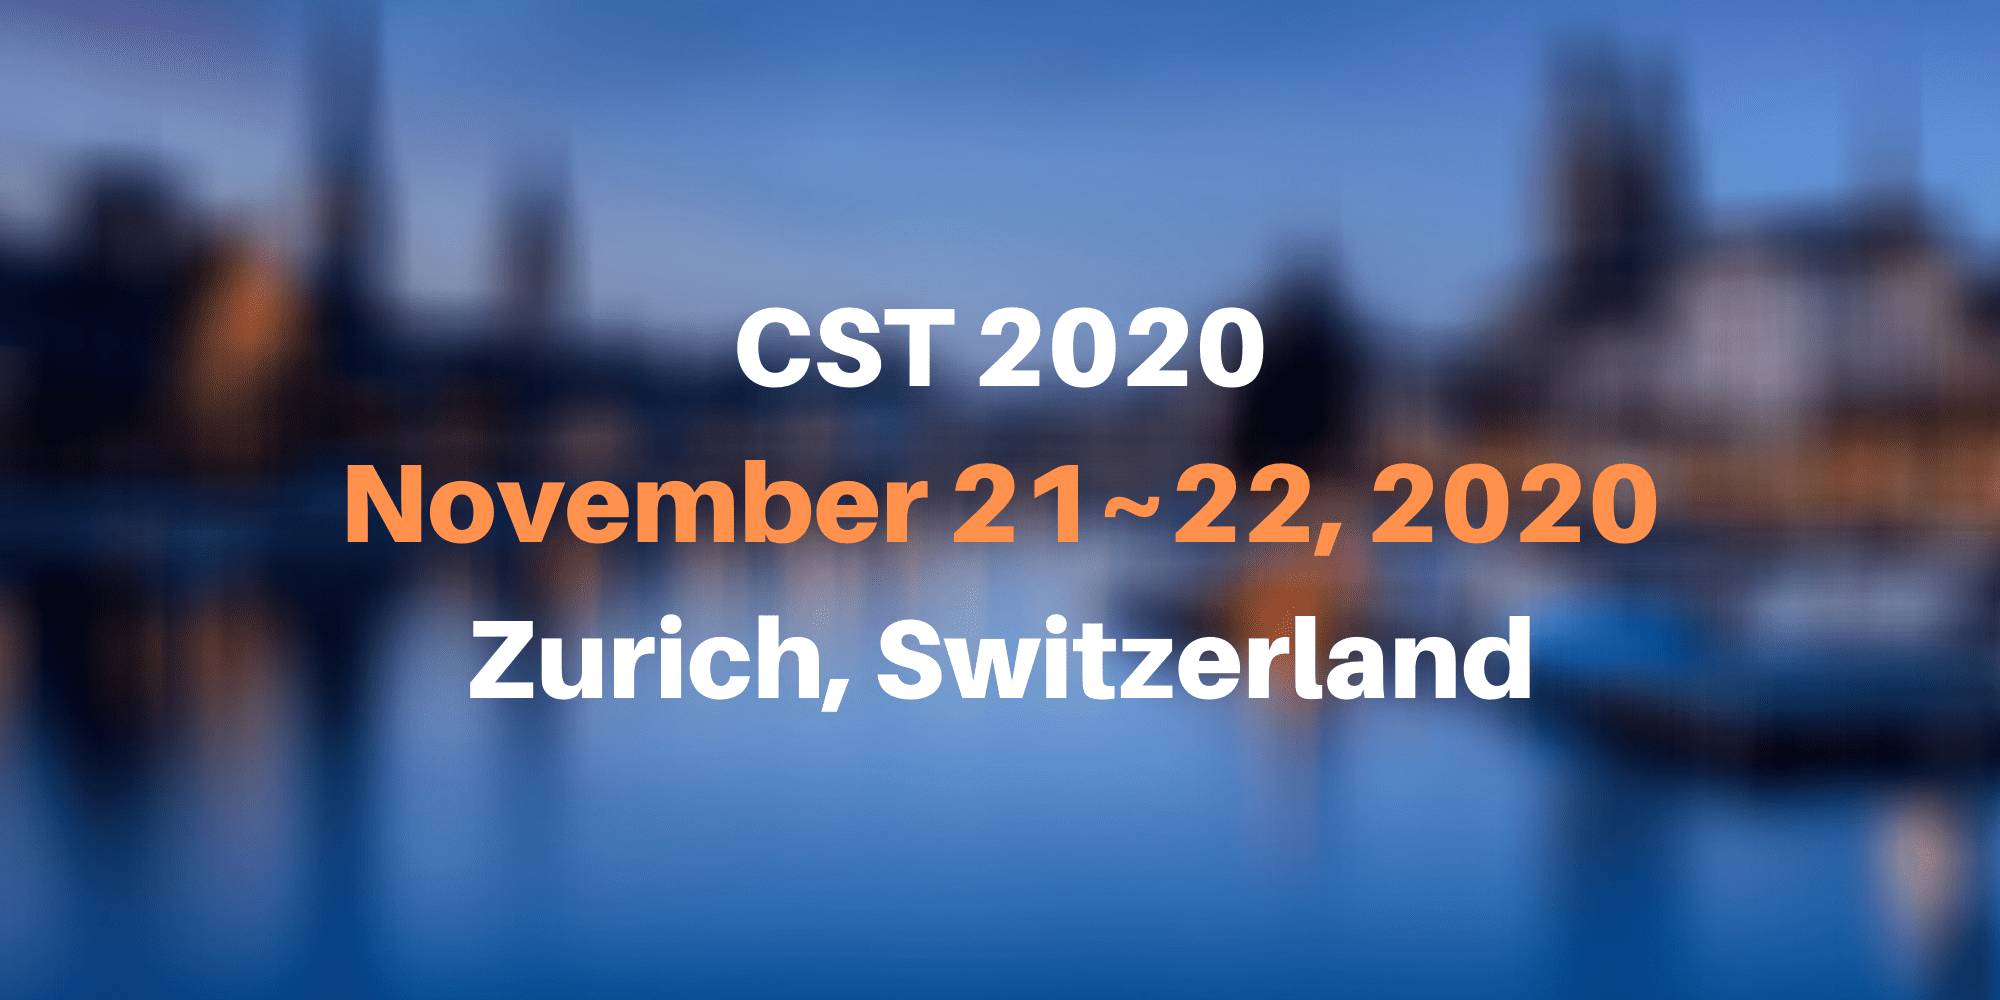 7th International Conference on Foundations of Computer Science & Technology (CST 2020)